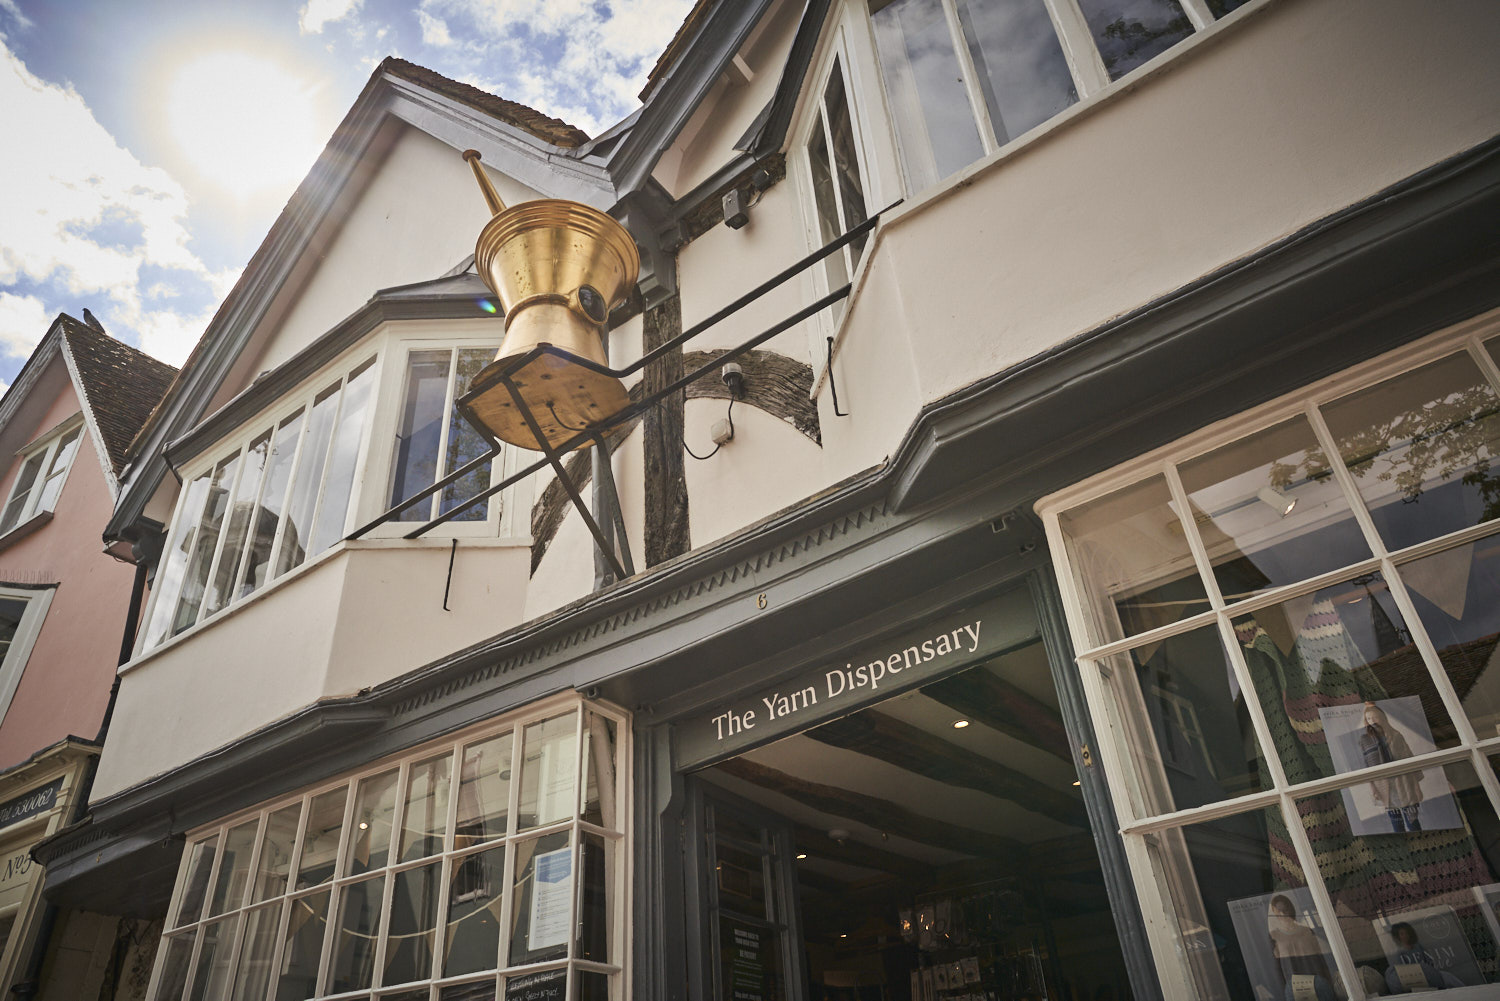 Image shows our iconic pestle and mortar, beamed ceilings inside the shop, and large bay windows in the apartment above.